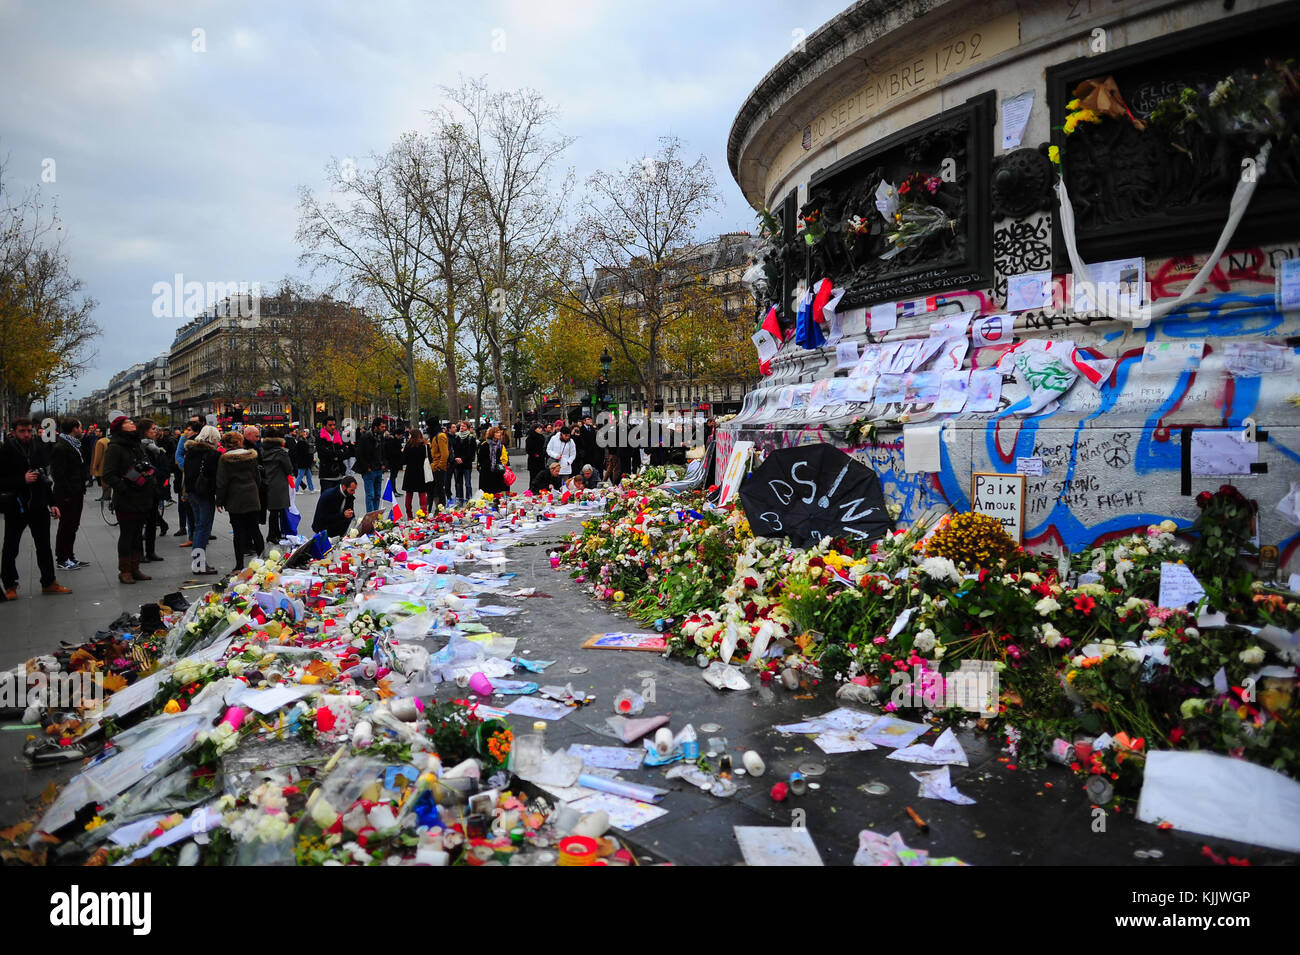 Homage to the victims of terrorist attacks in Paris. France. - Stock Image